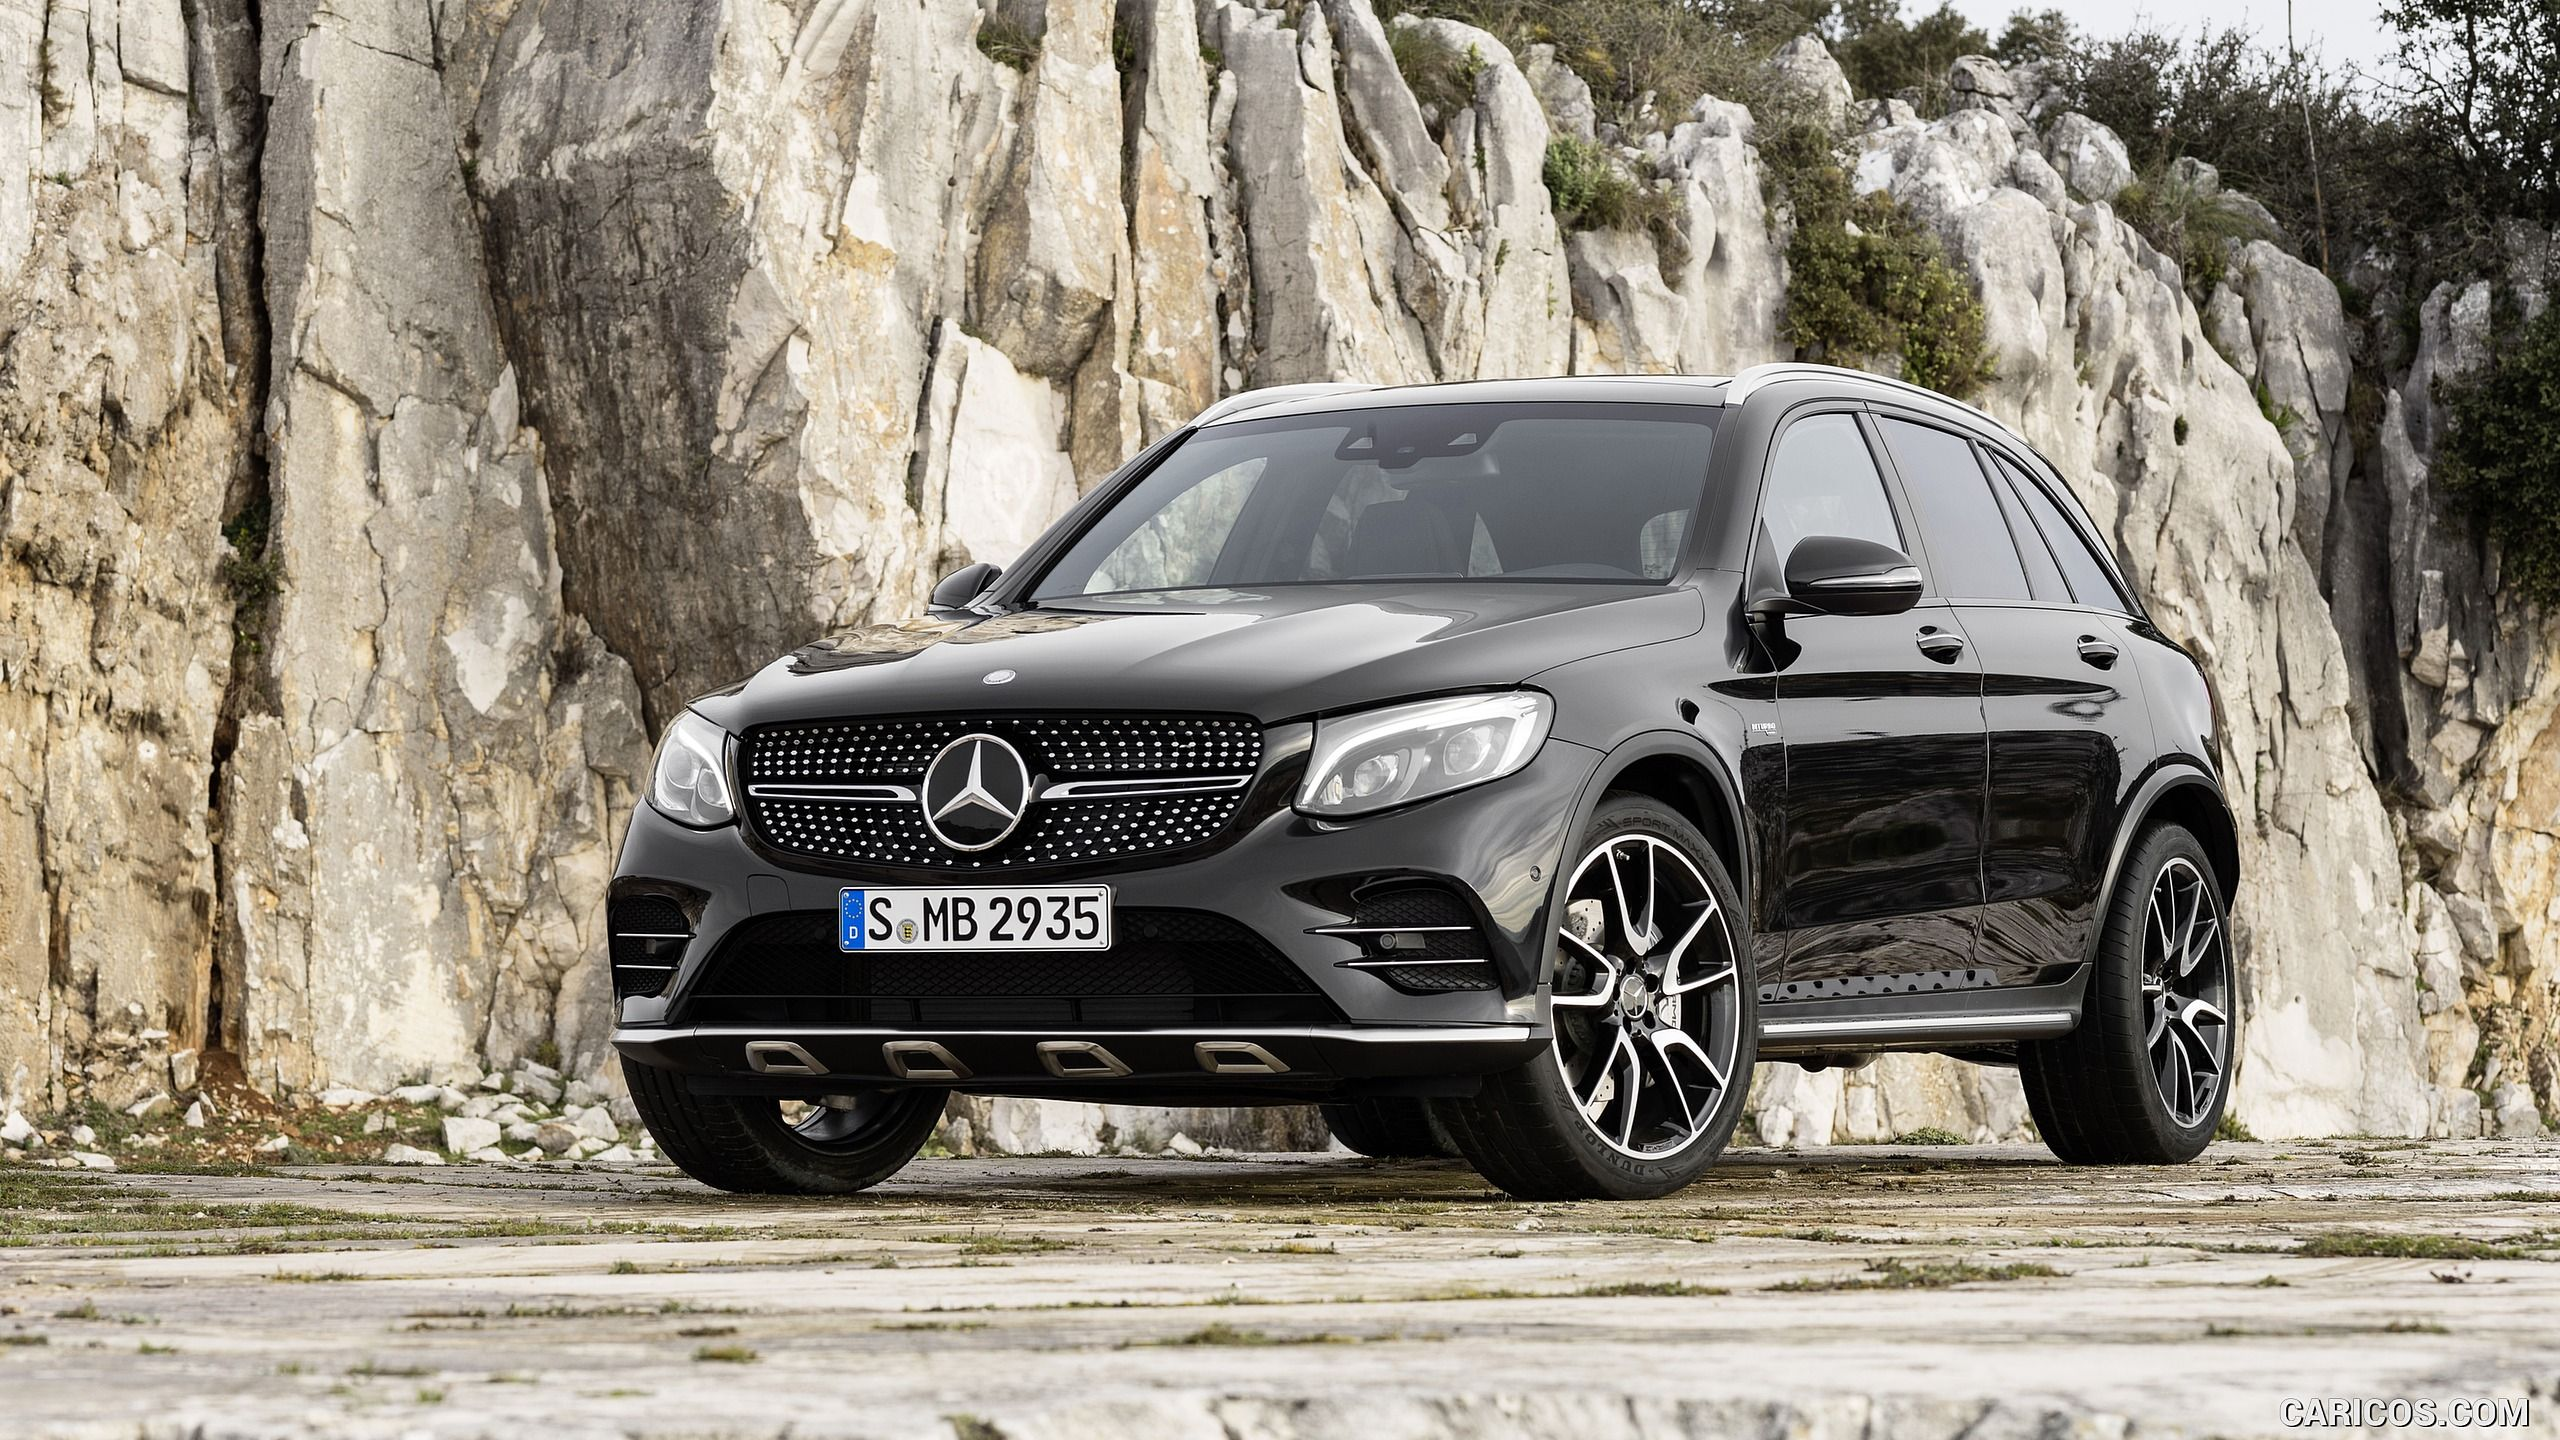 2017 Mercedes Amg Glc 43 Wallpaper Mercedes Benz Glc Mercedes